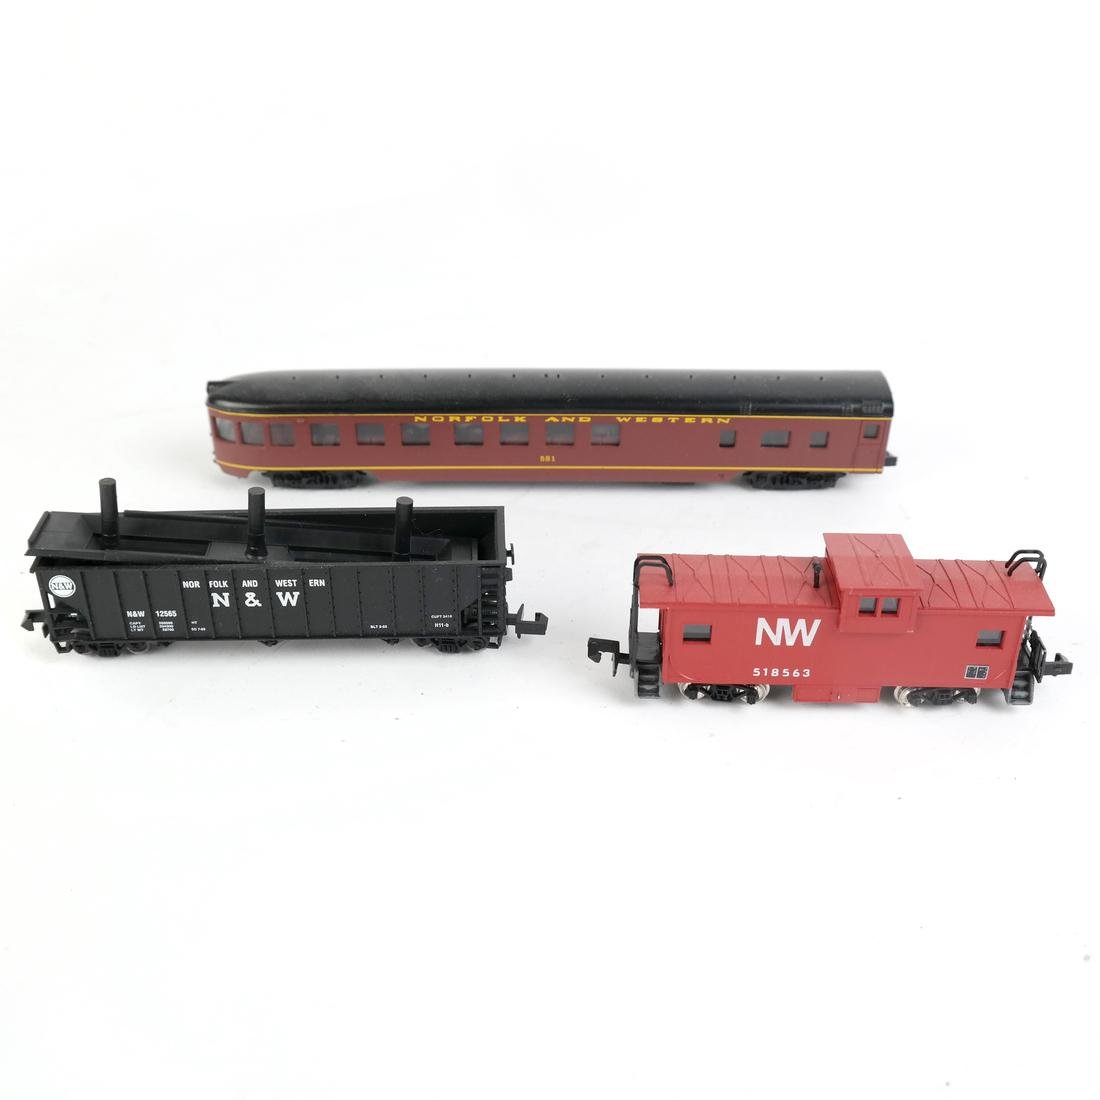 Lot of Toy Trains - 4